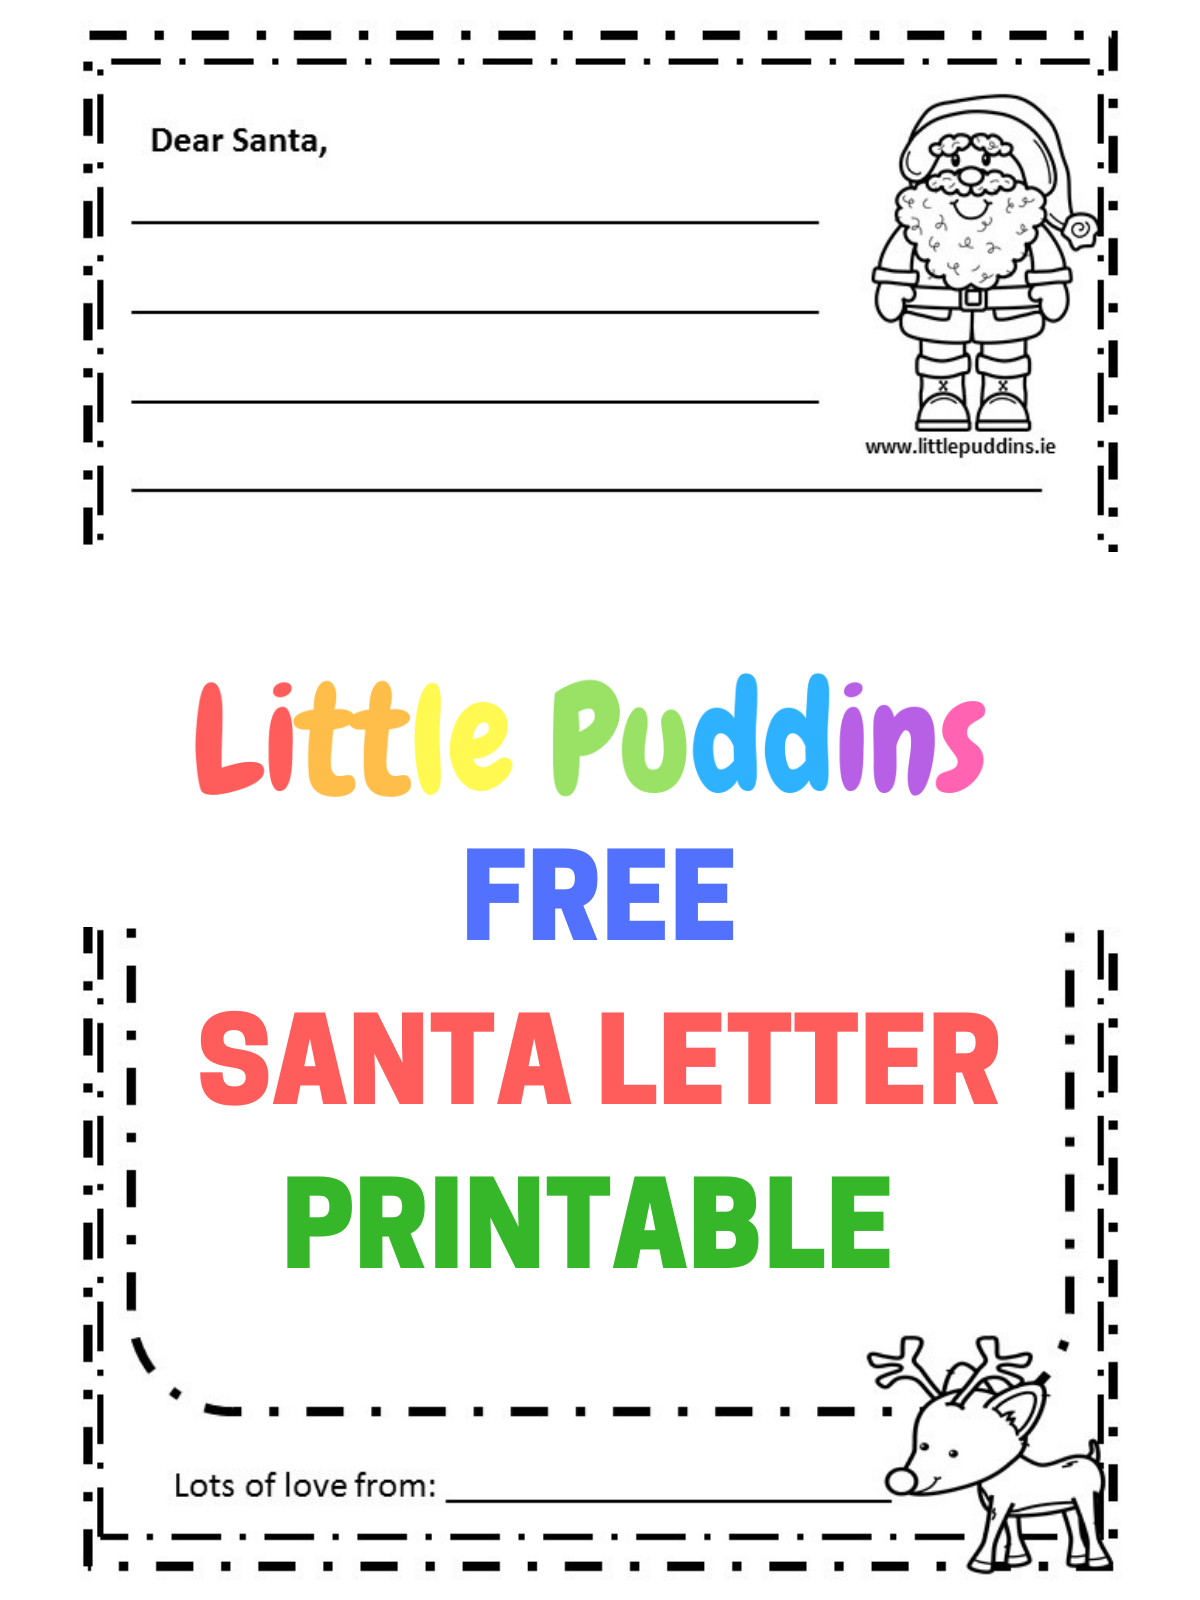 image regarding Santa Letters Printable referred to as Santa Letter Absolutely free Printable Minimal Puddins Free of charge Printables